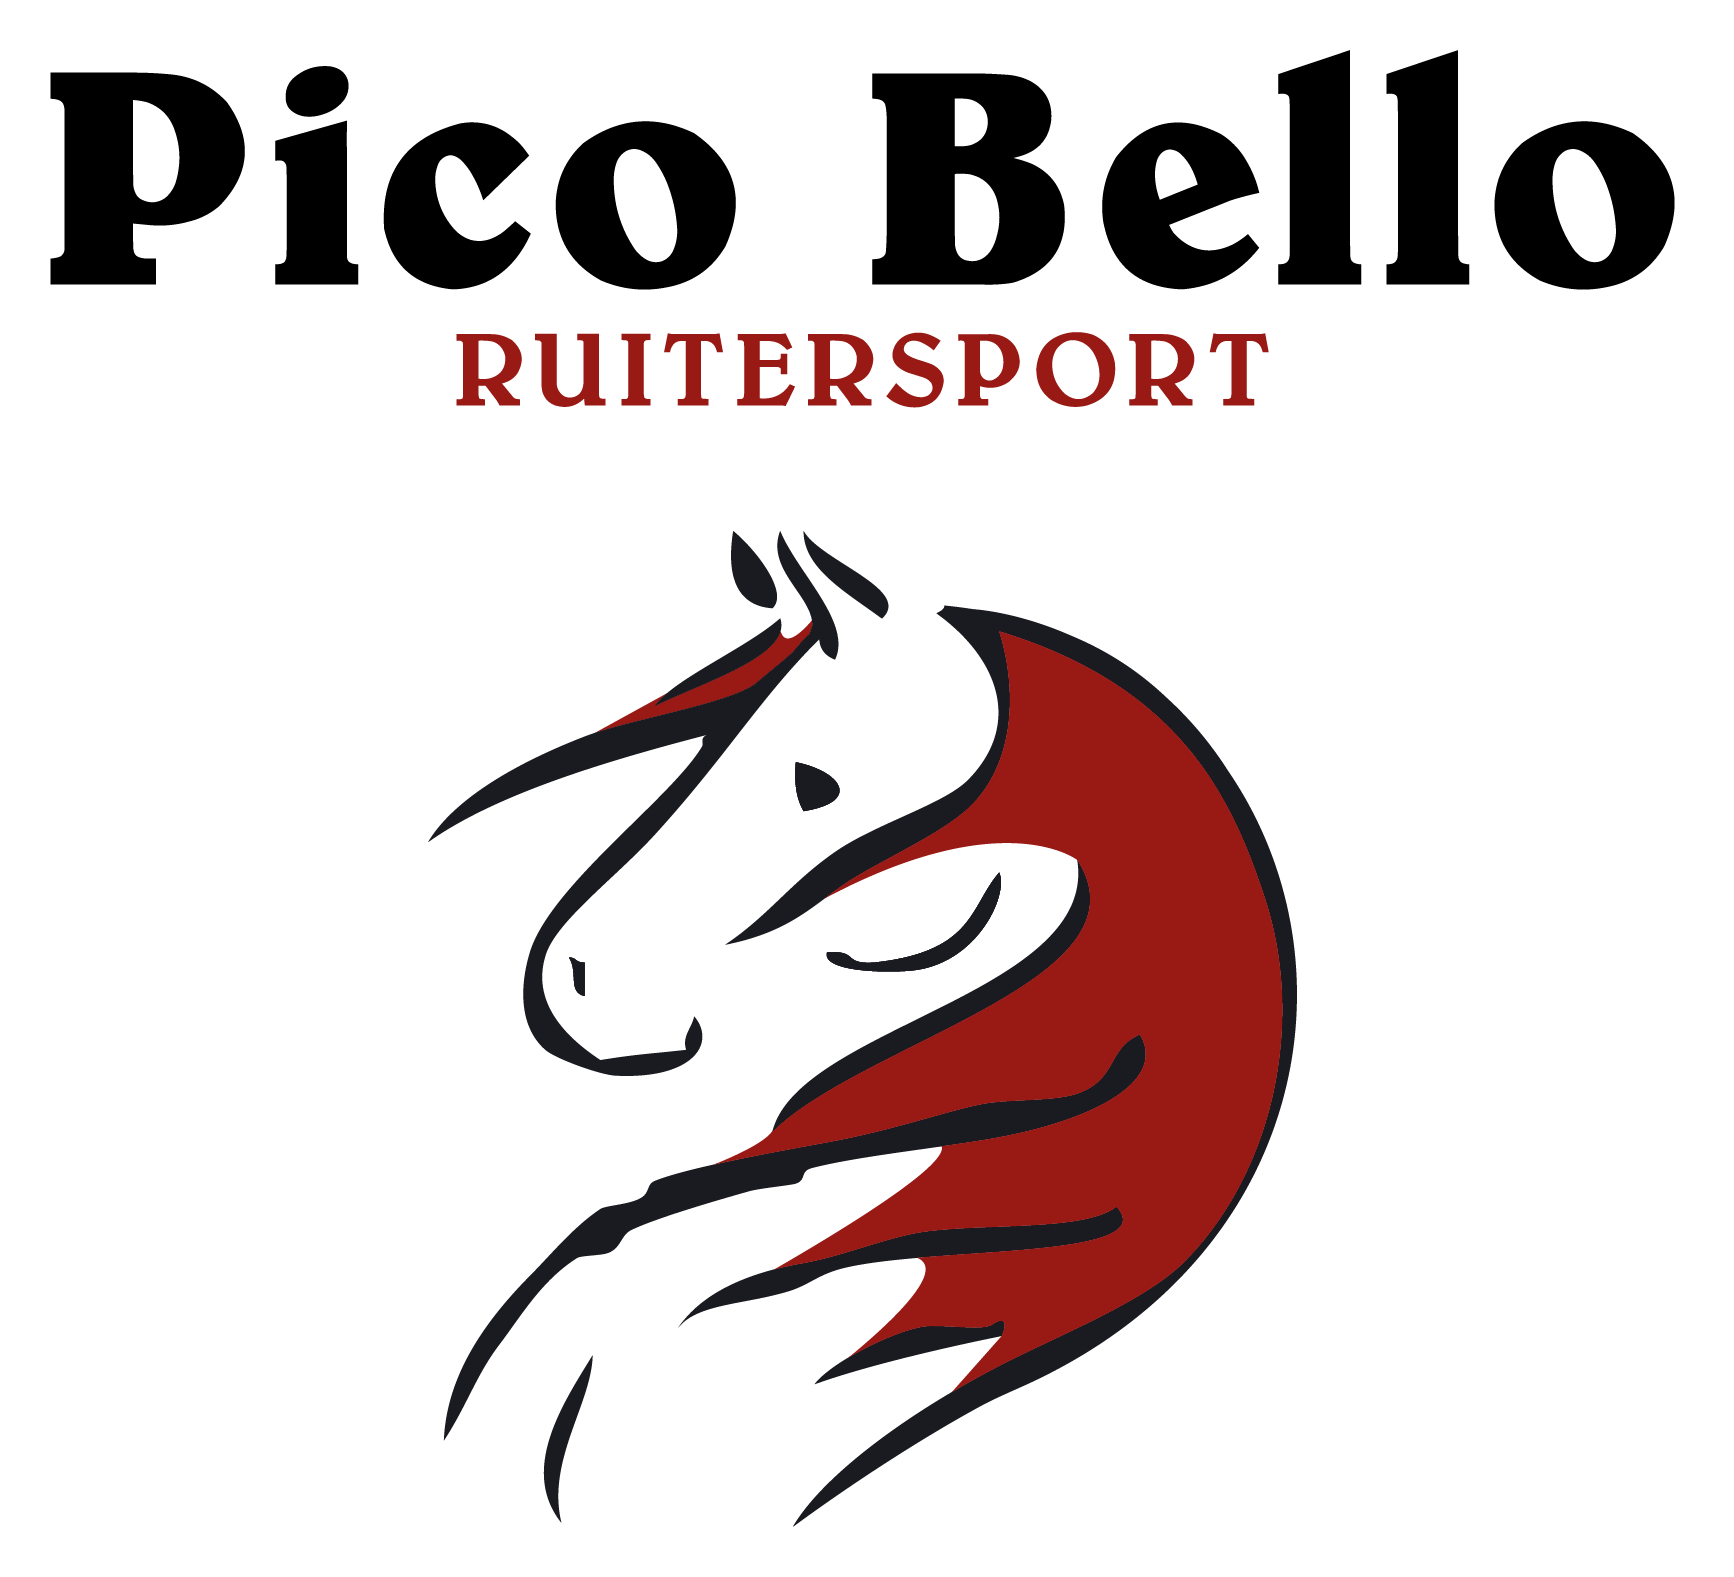 Pico Bello Ruitersport in Snellegem door Lieve Dereu